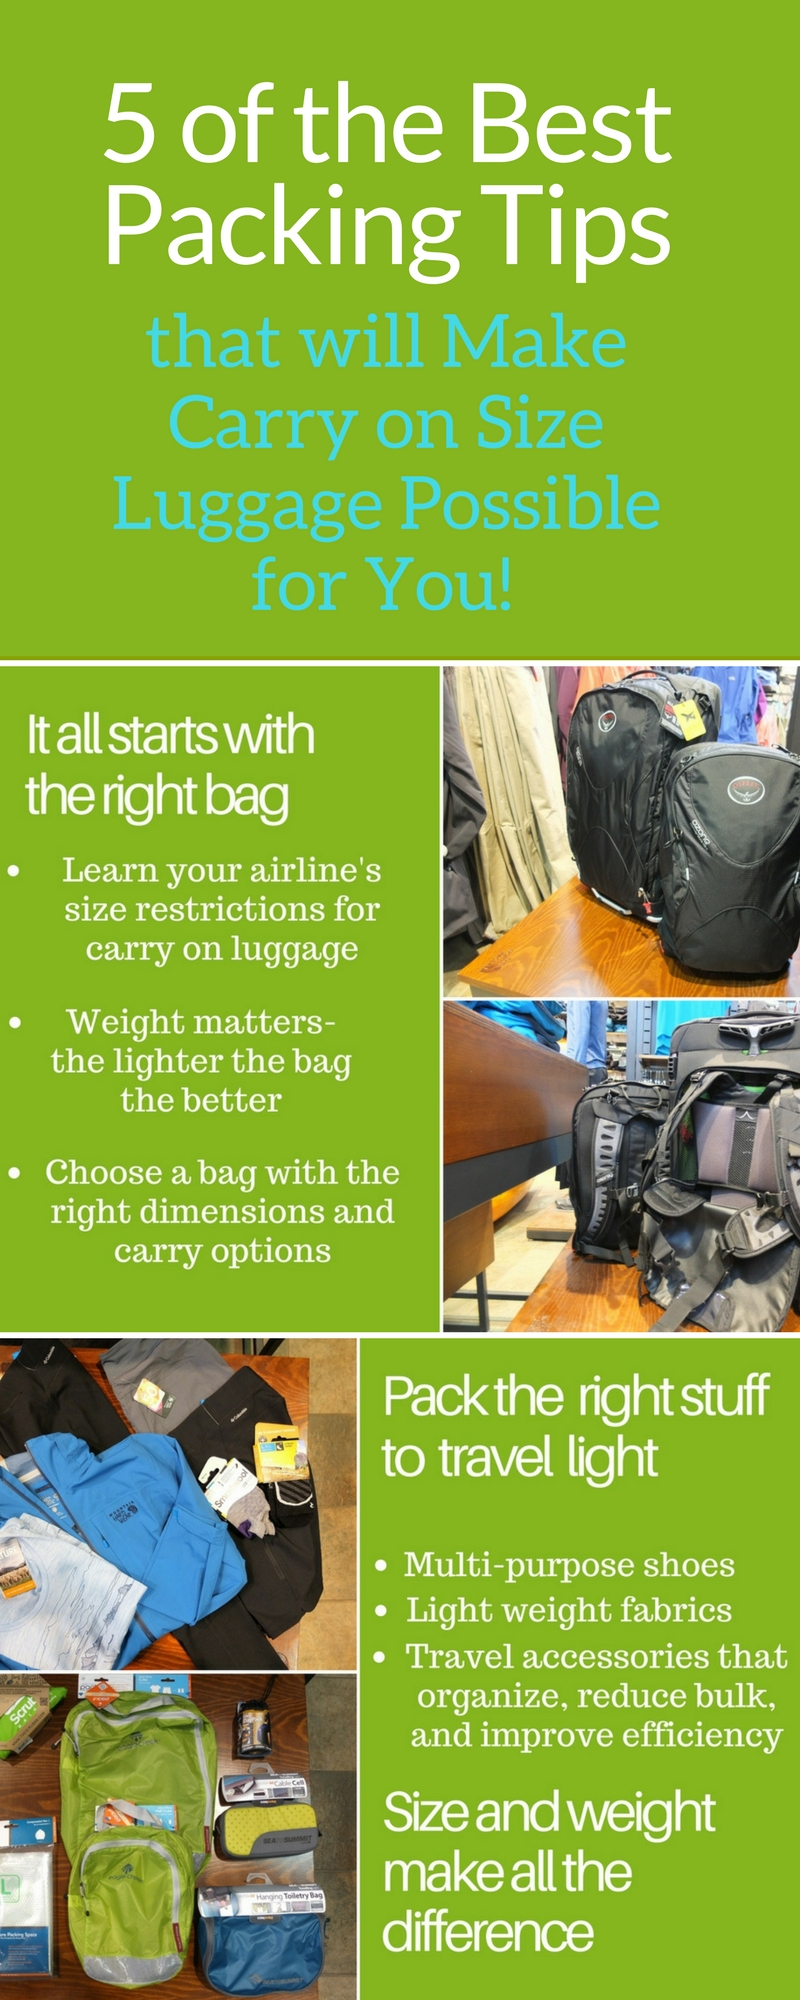 5 Of The Best Packing Tips To Make Carry On Size Luggage